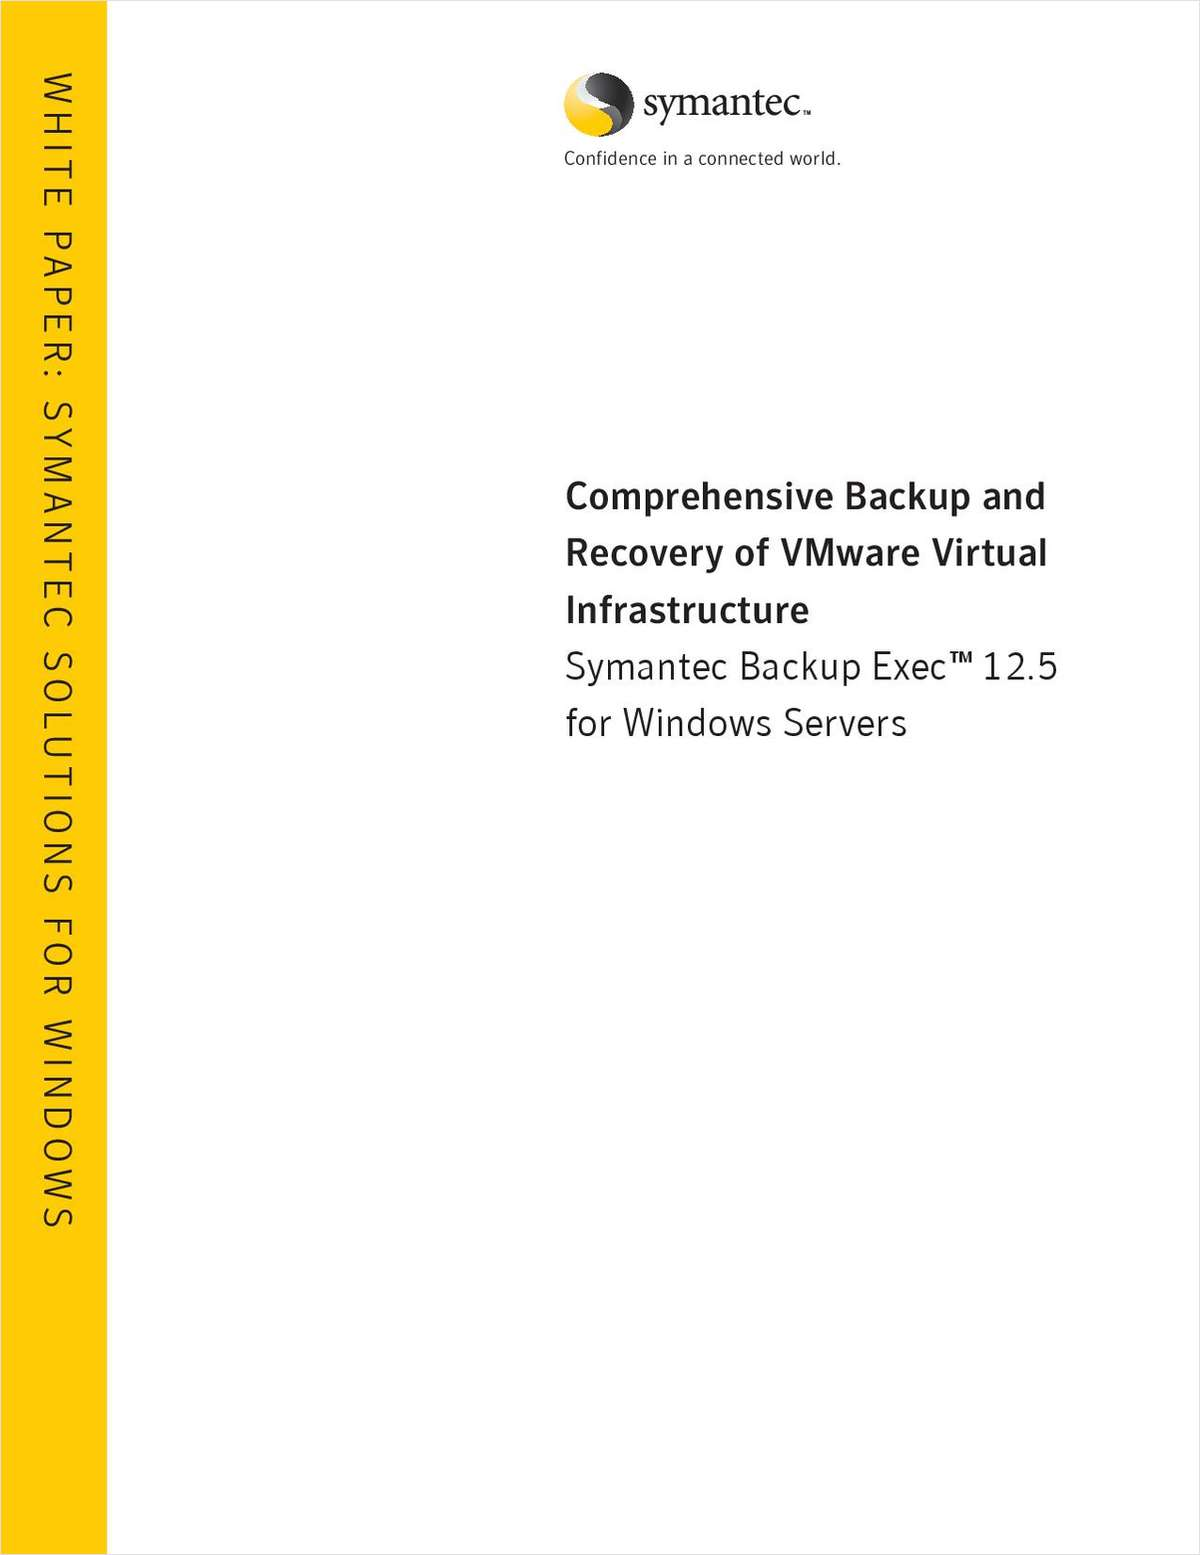 Comprehensive Backup and Recovery of VMware Virtual Infrastructure